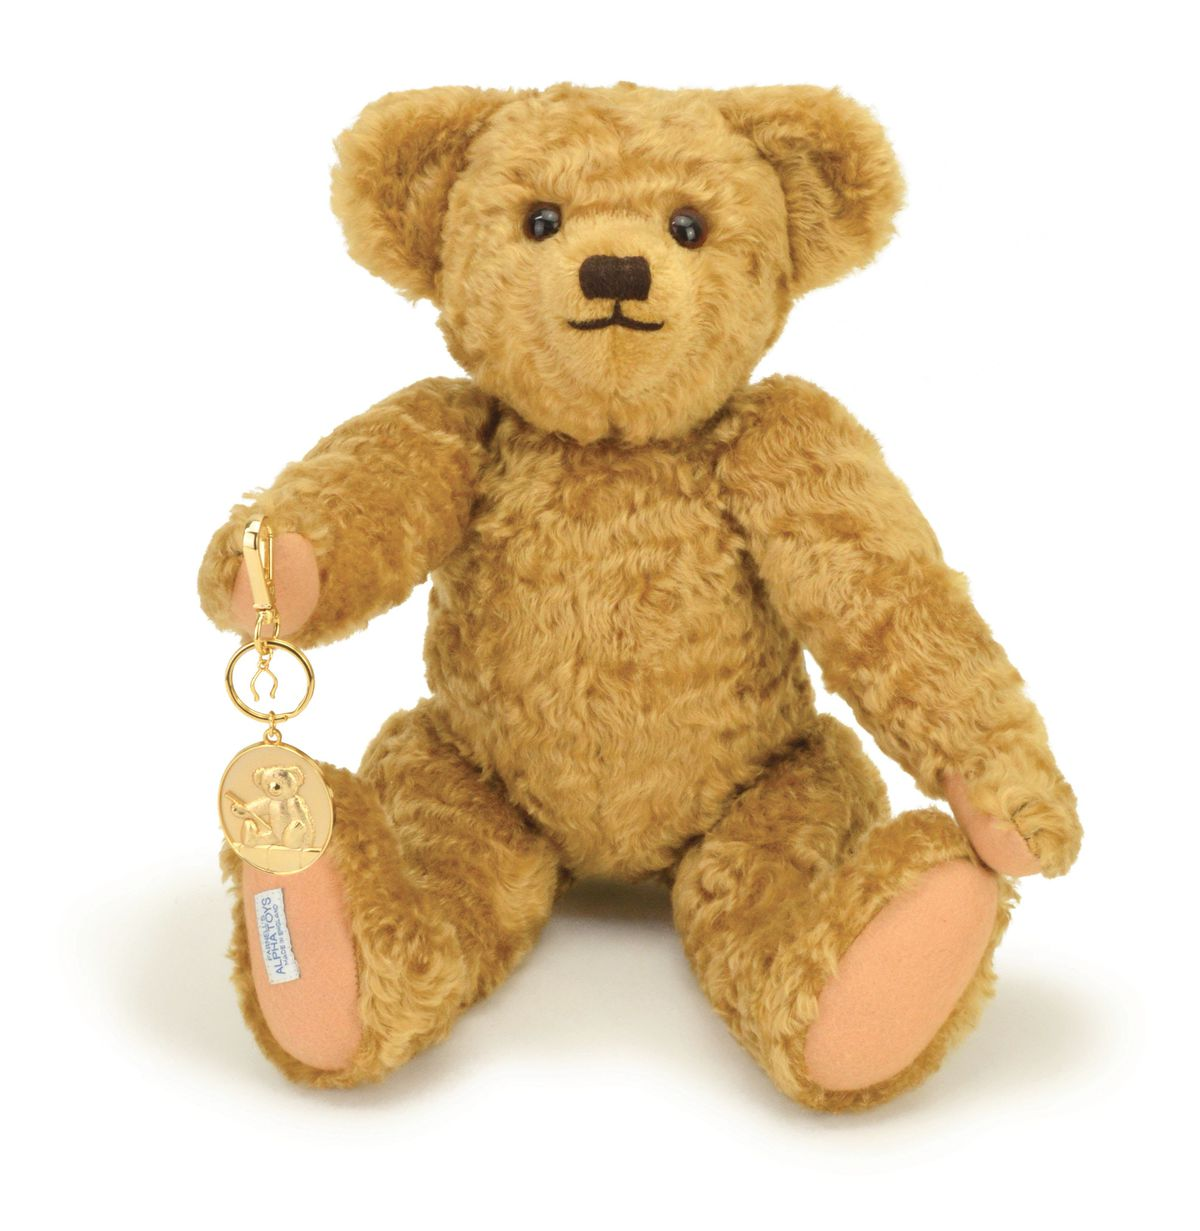 One of the Edward bears with the commemorative gold-plated keyring